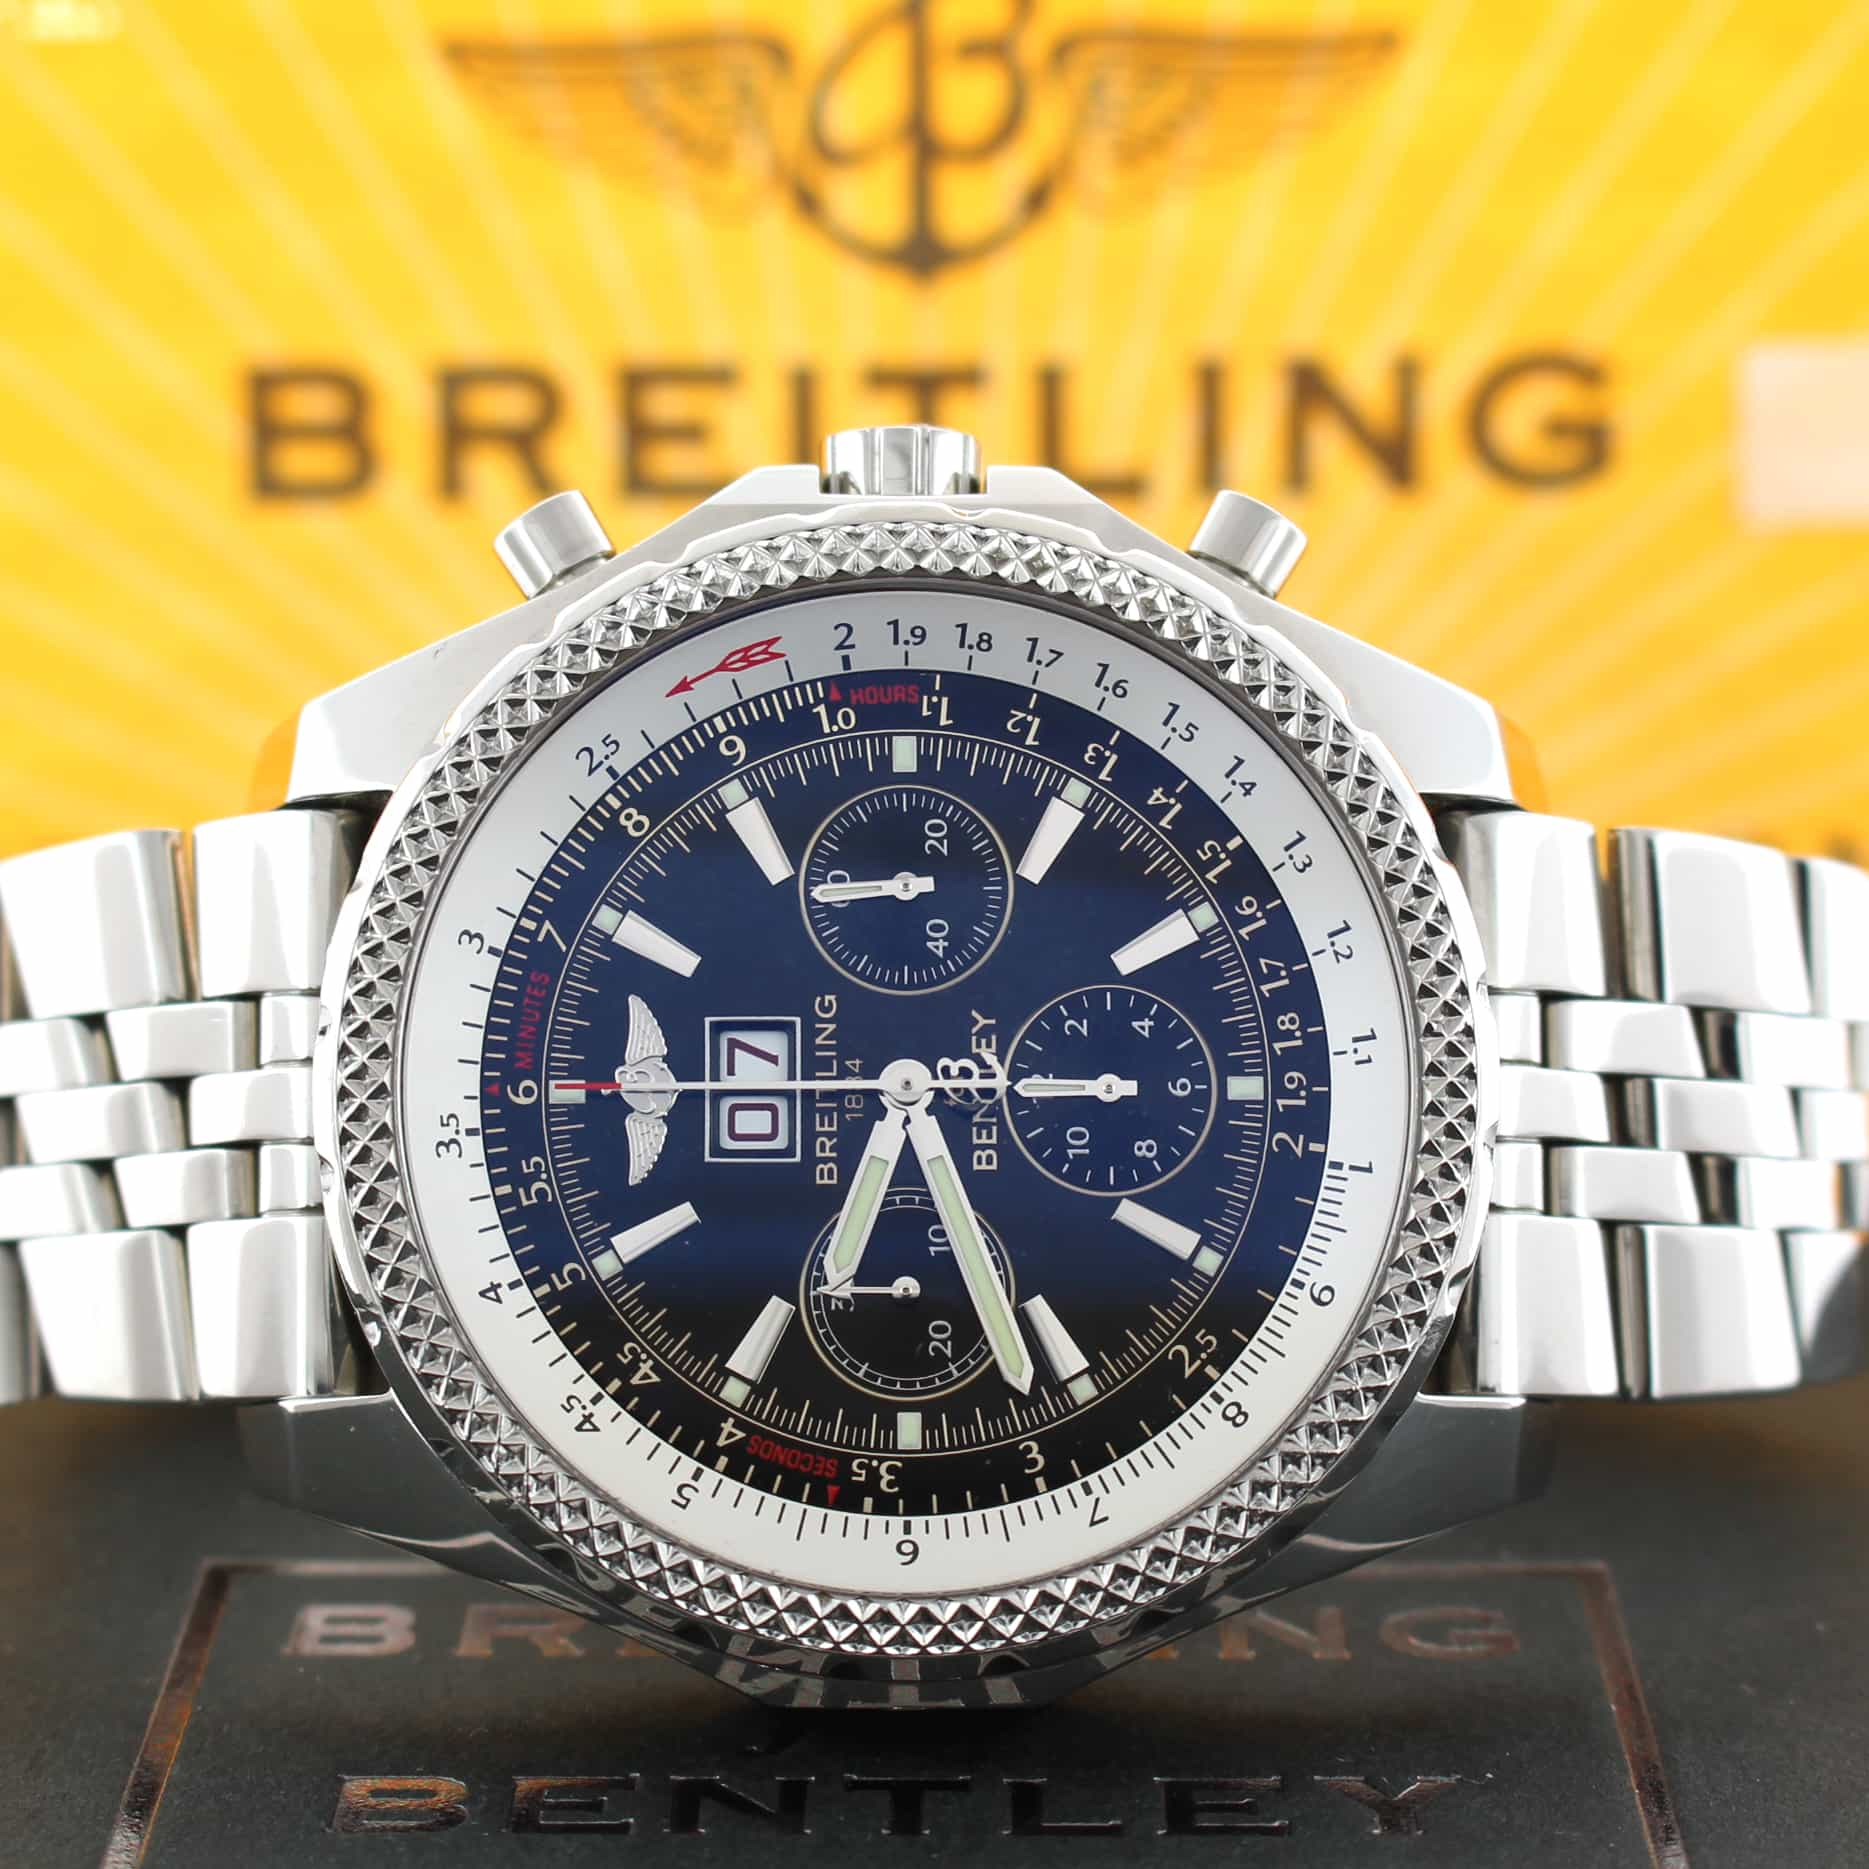 Breitling Bentley 6 75 Chronograph Black Dial Big Date Automatic Mens Elegant Swiss